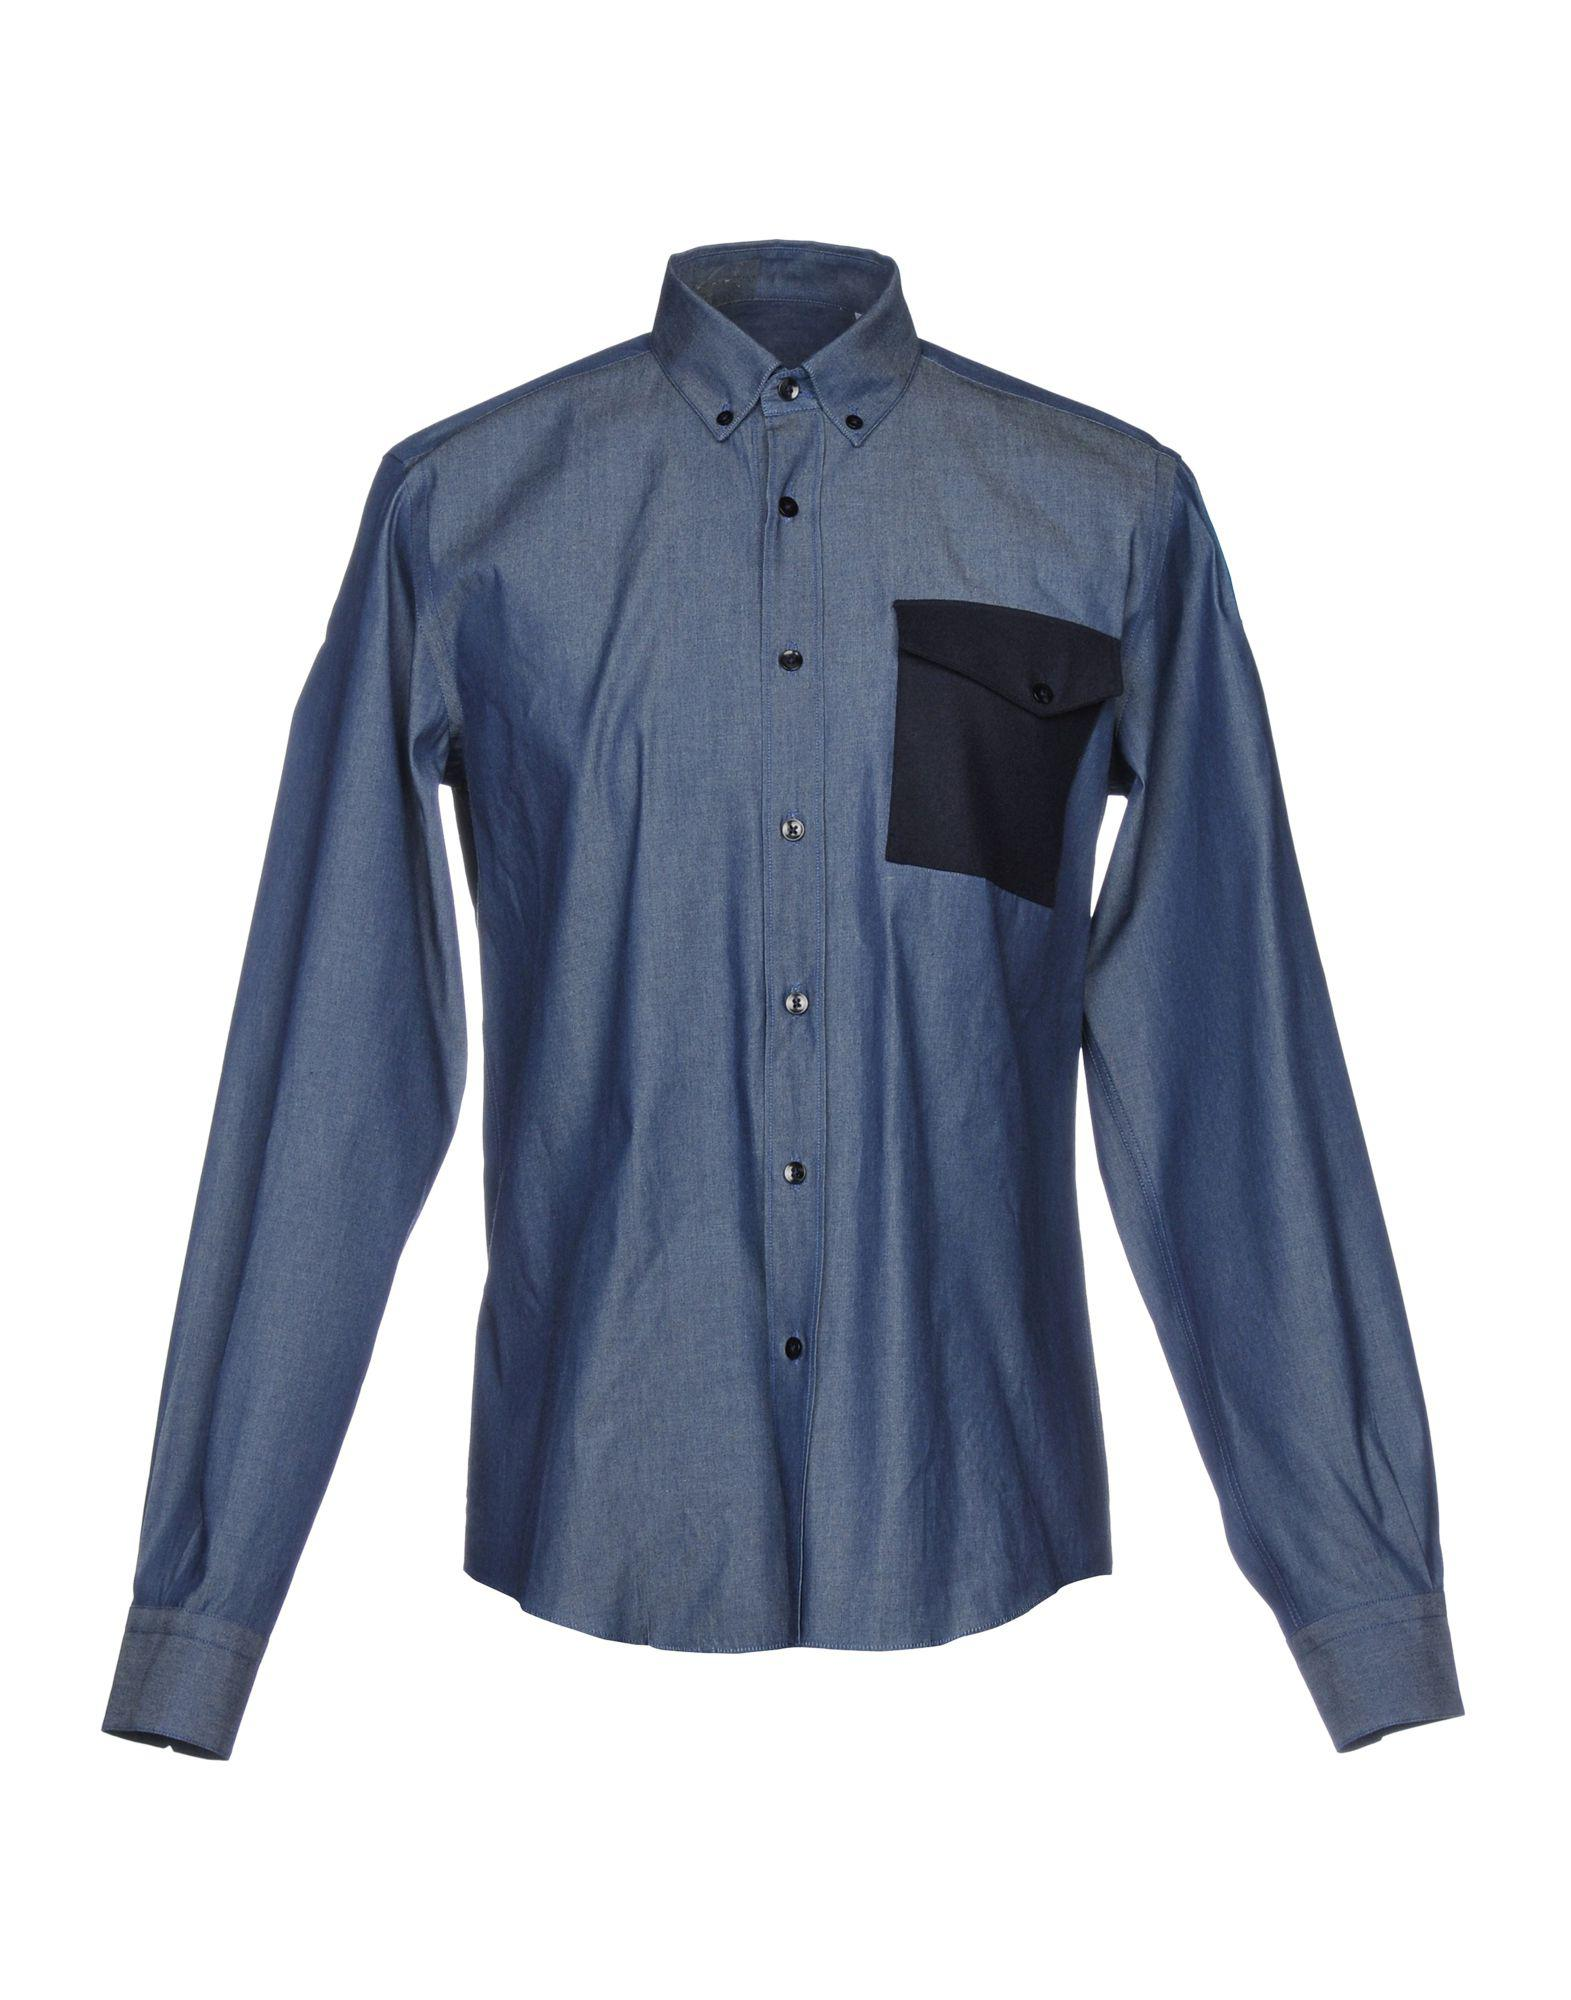 DENIM - Denim shirts low brand Outlet Inexpensive Manchester Free Shipping Cheap Real 30EtHKzh